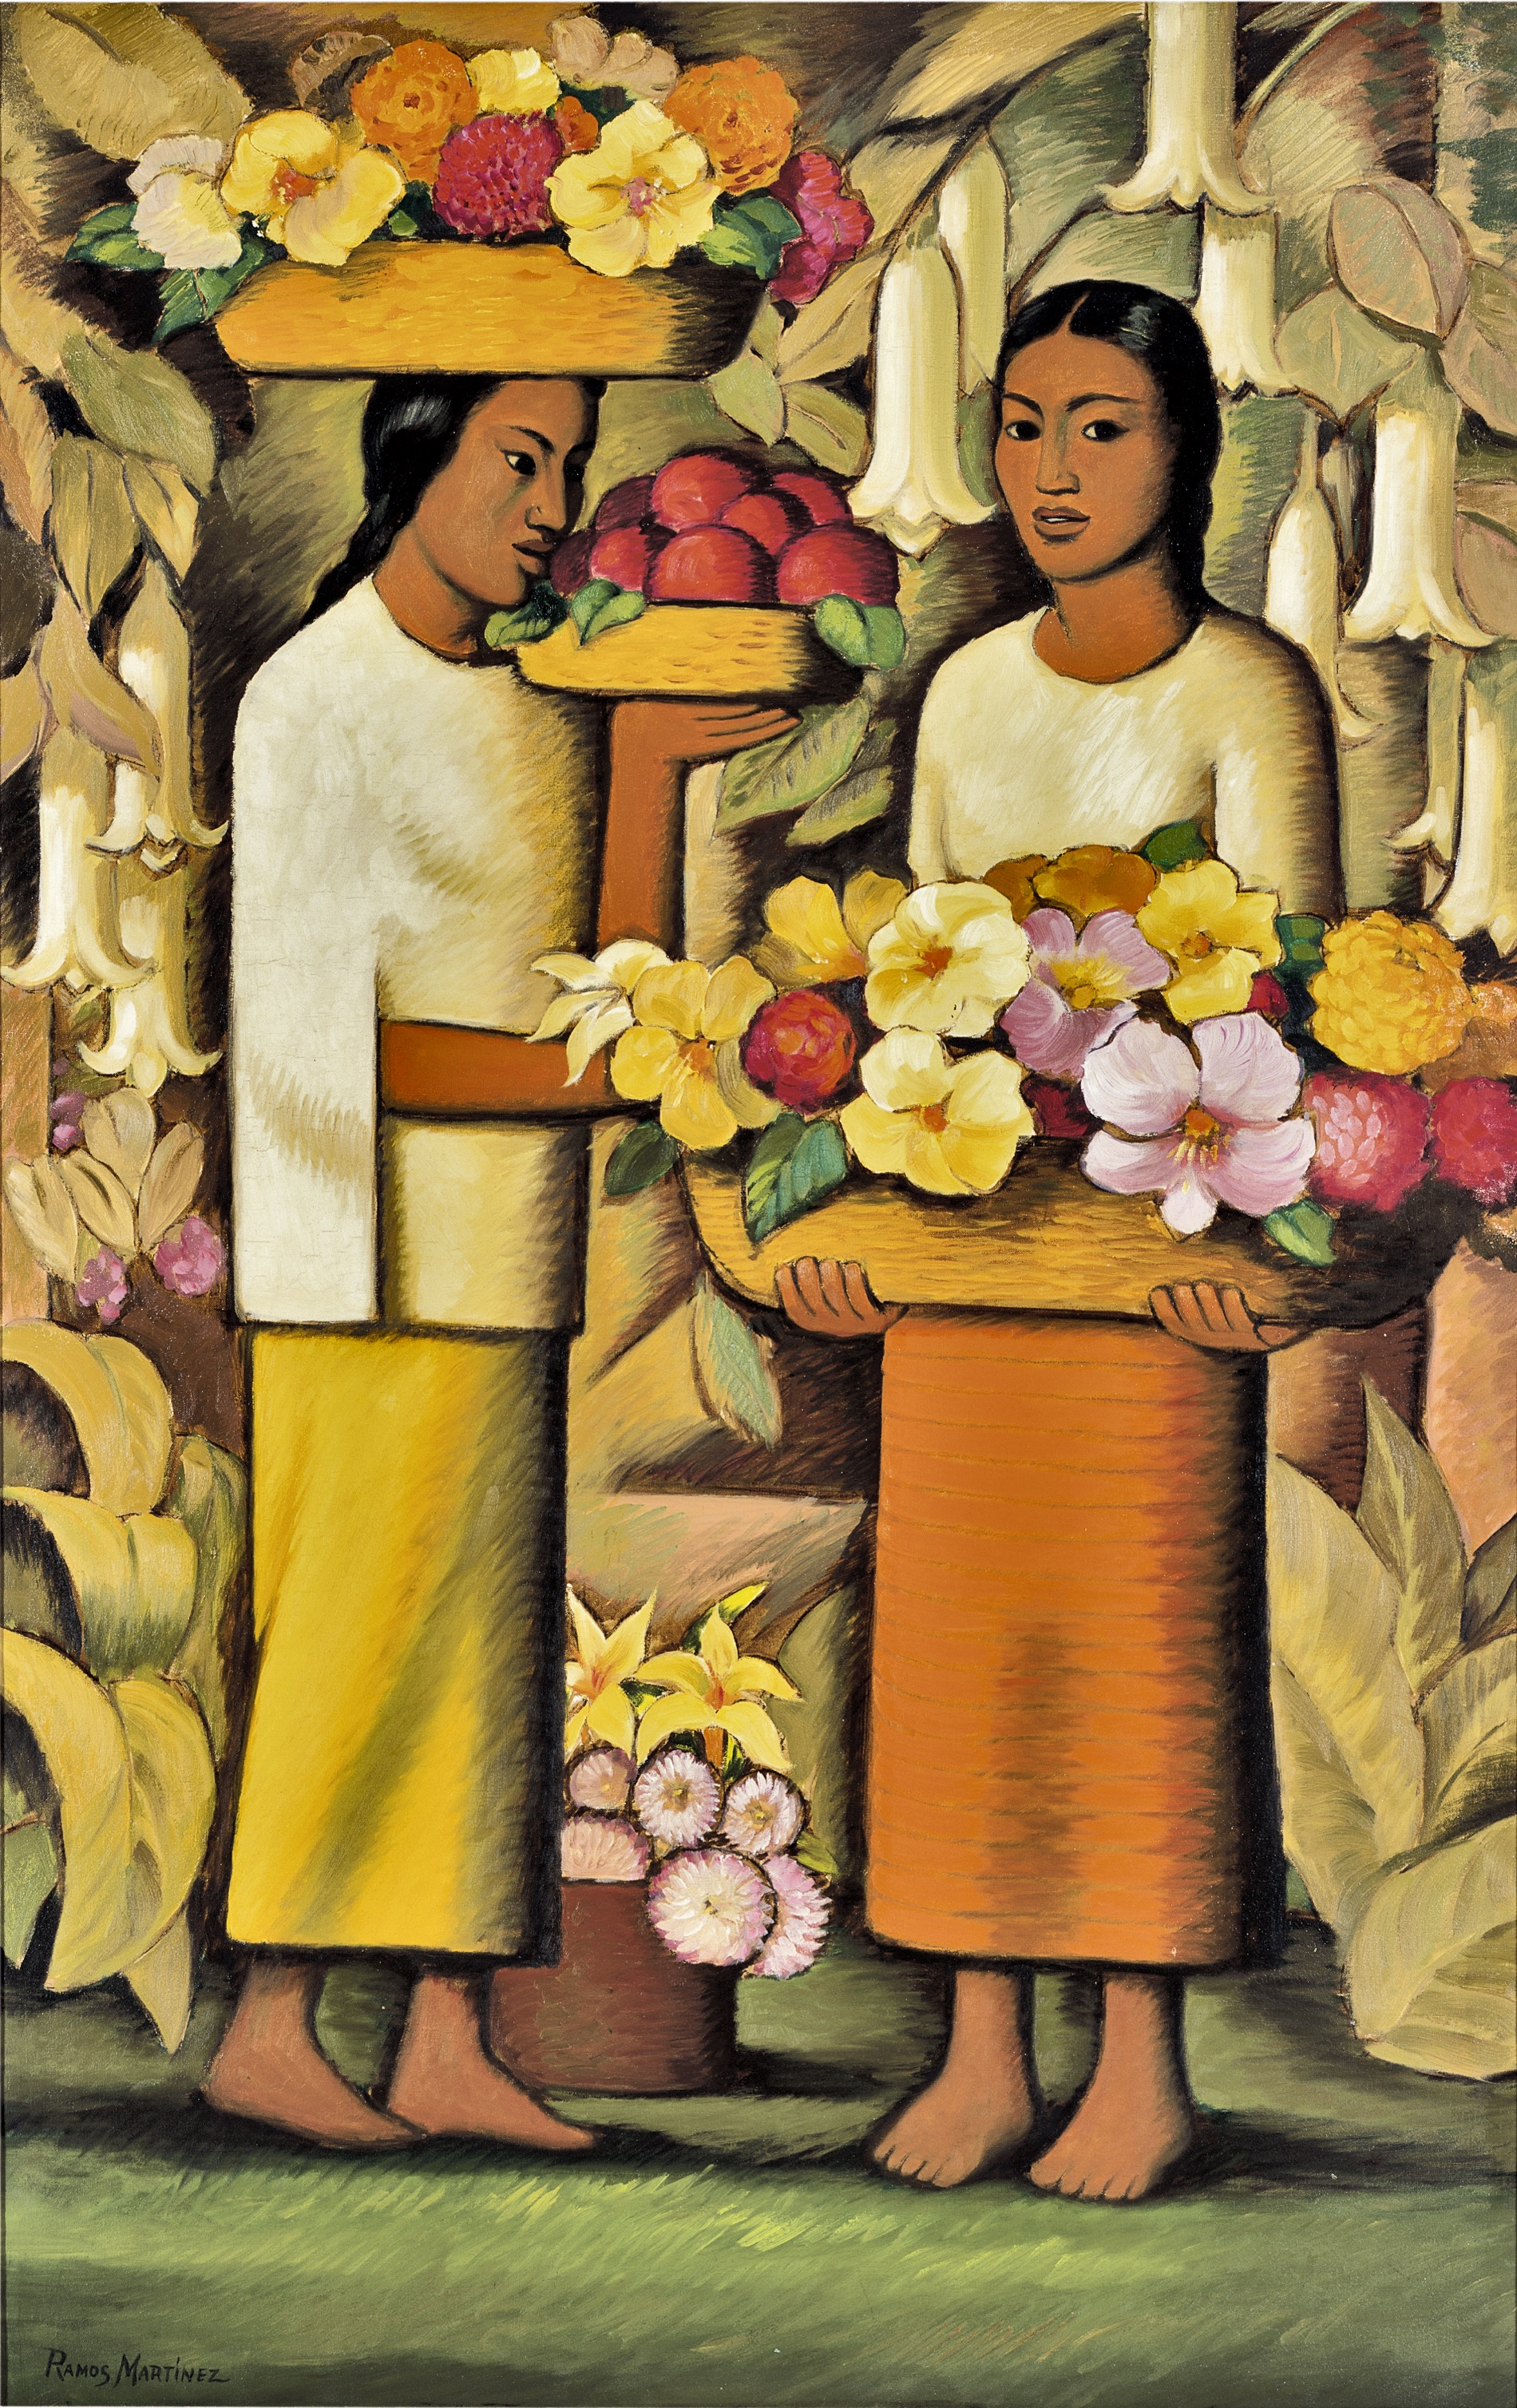 Mujeres con Flores (Grande) / Women with Flowers (Large)  ca. 1938 oil on canvas / óleo sobre tela 56.5 x 36 inches; 143.5 x 91.4 centímetros Private collection